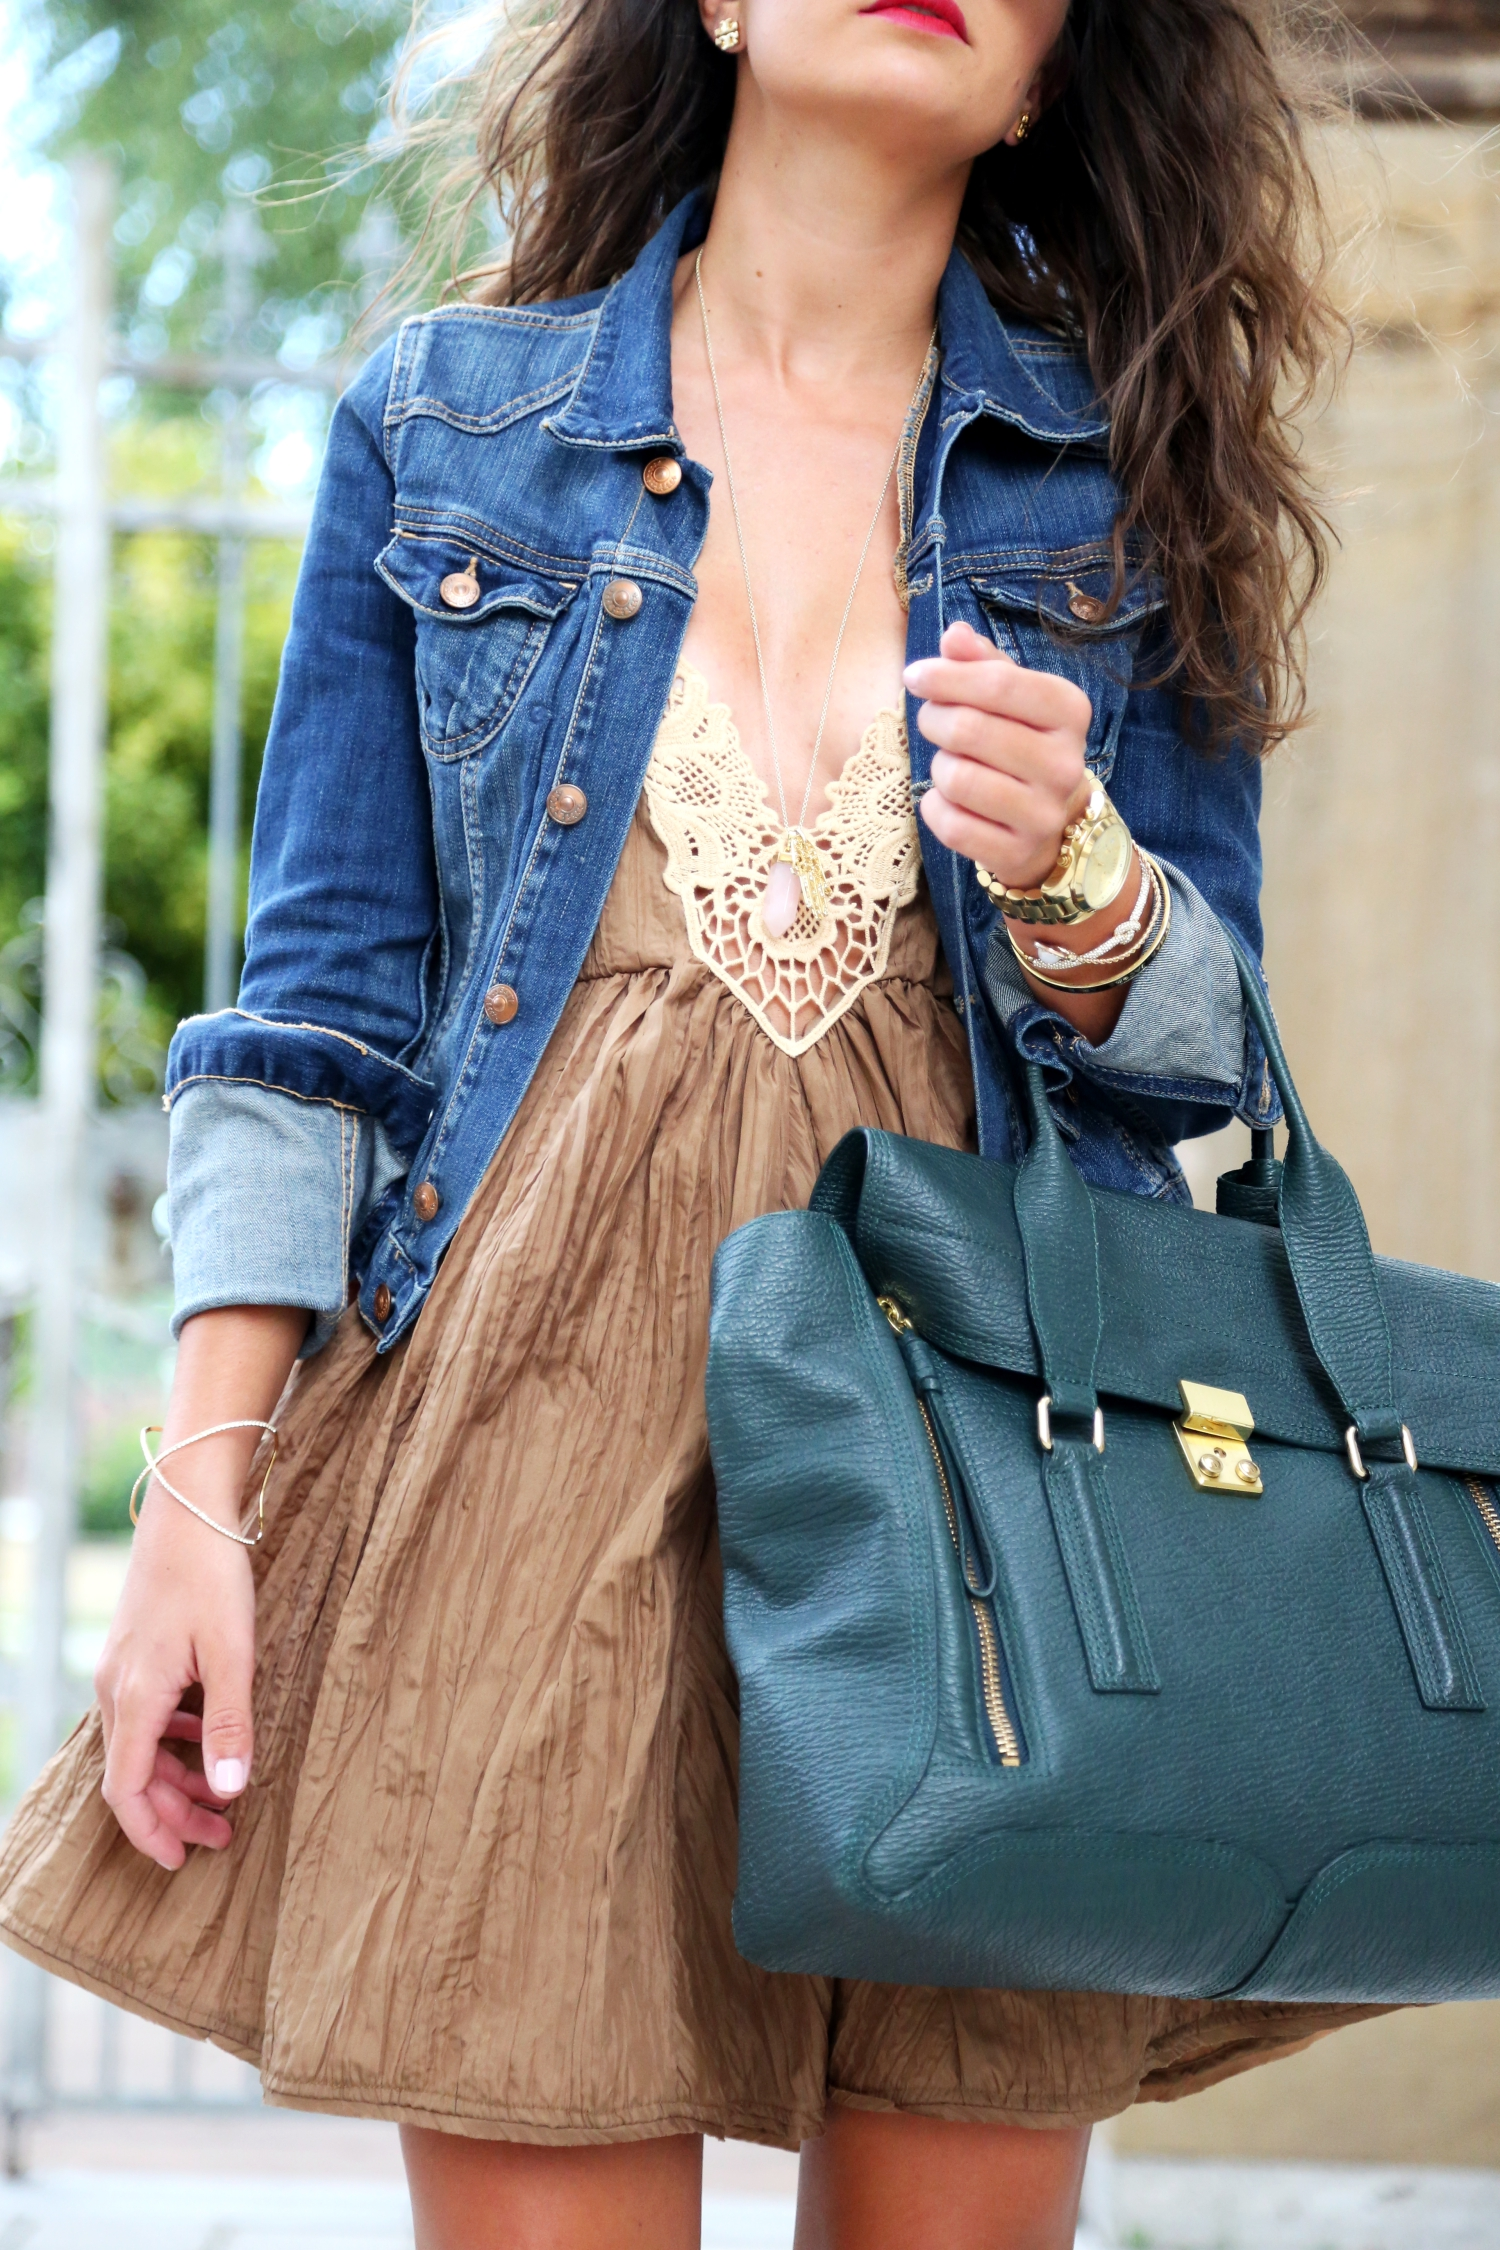 outfit-details-fashionhippieloves-free-people-3.1.phillip-lim-pashli-denim-jacket